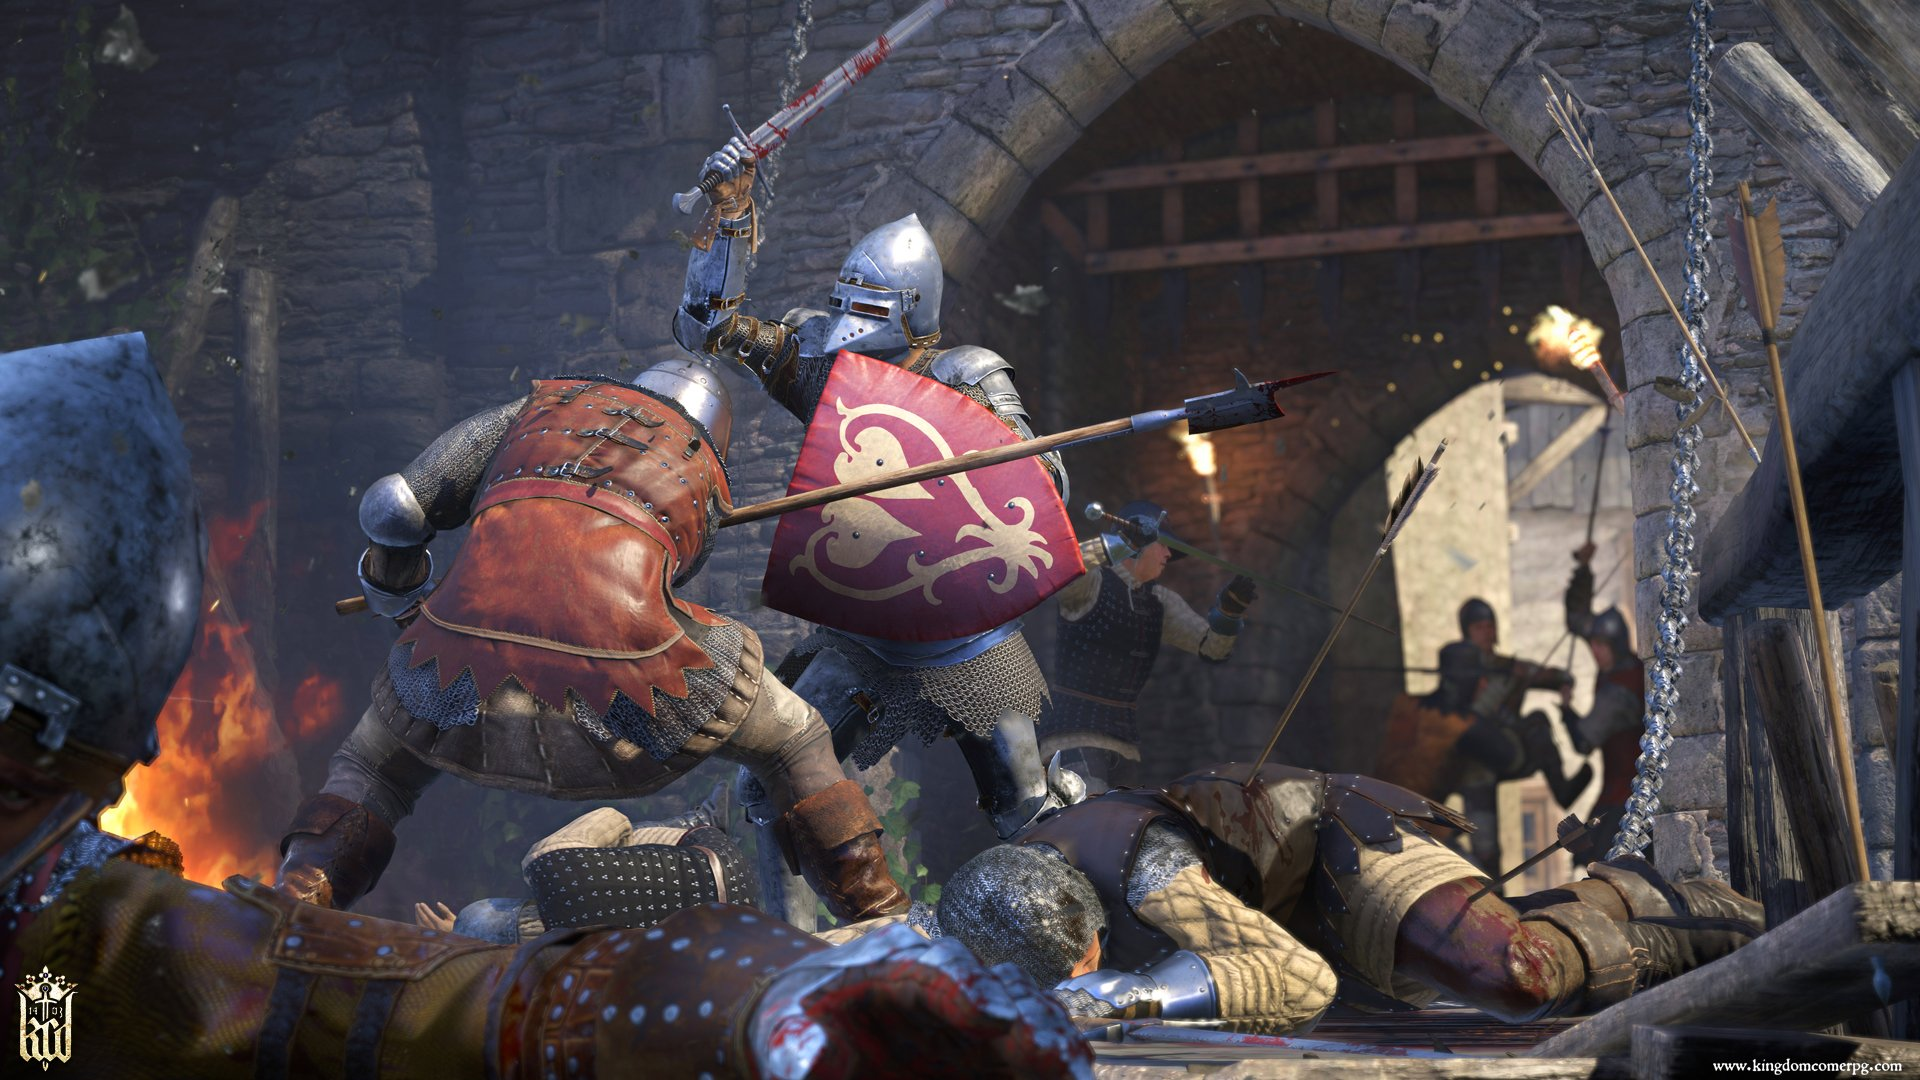 The Witcher author was a 'huge influence' for Kingdom Come: Deliverance screenshot